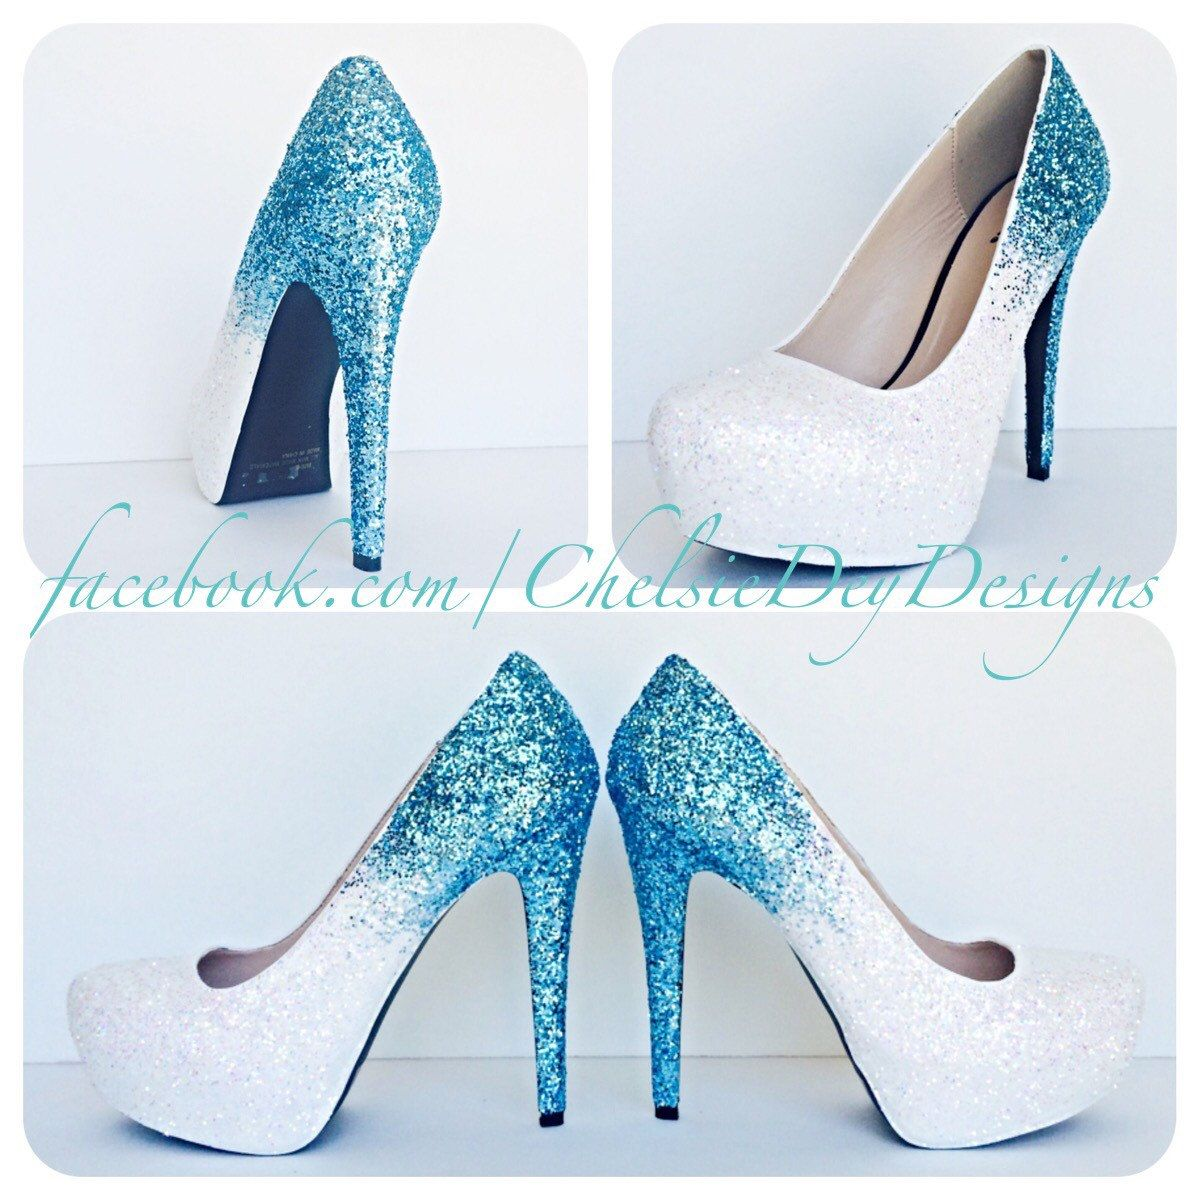 520997cc6e39a Glitter High Heels - Blue and White Pumps -Aqua Turquoise Ombre ...